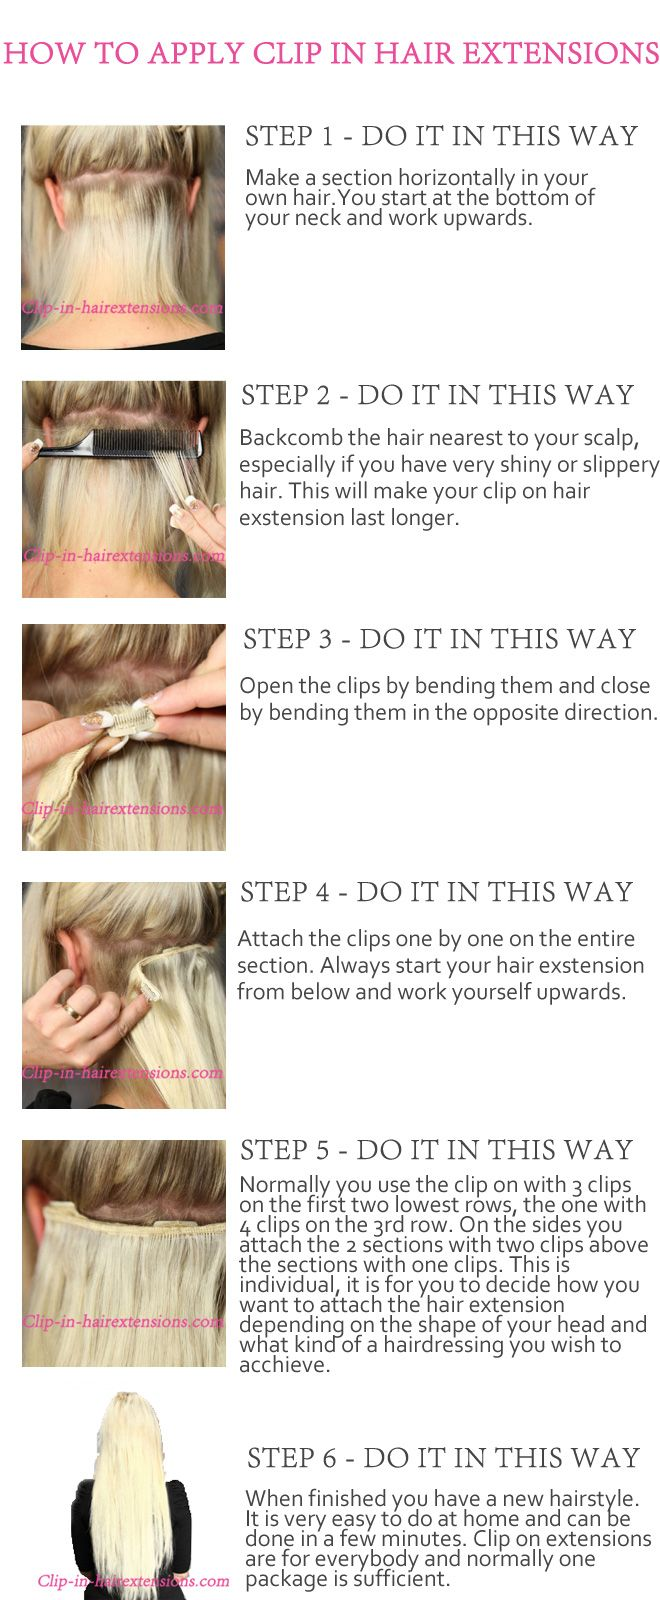 Clip on hair extensions are used by many celebrities around the world. Overstyling can take its toll on hair, which is why some stars like as Beyonce,Lady Gaga, Jennifer Lopez have taken to wearing wigs and extensions on the red carpet. Clip on is the most lenient hair extensions method and you are ready in 5 minutes!